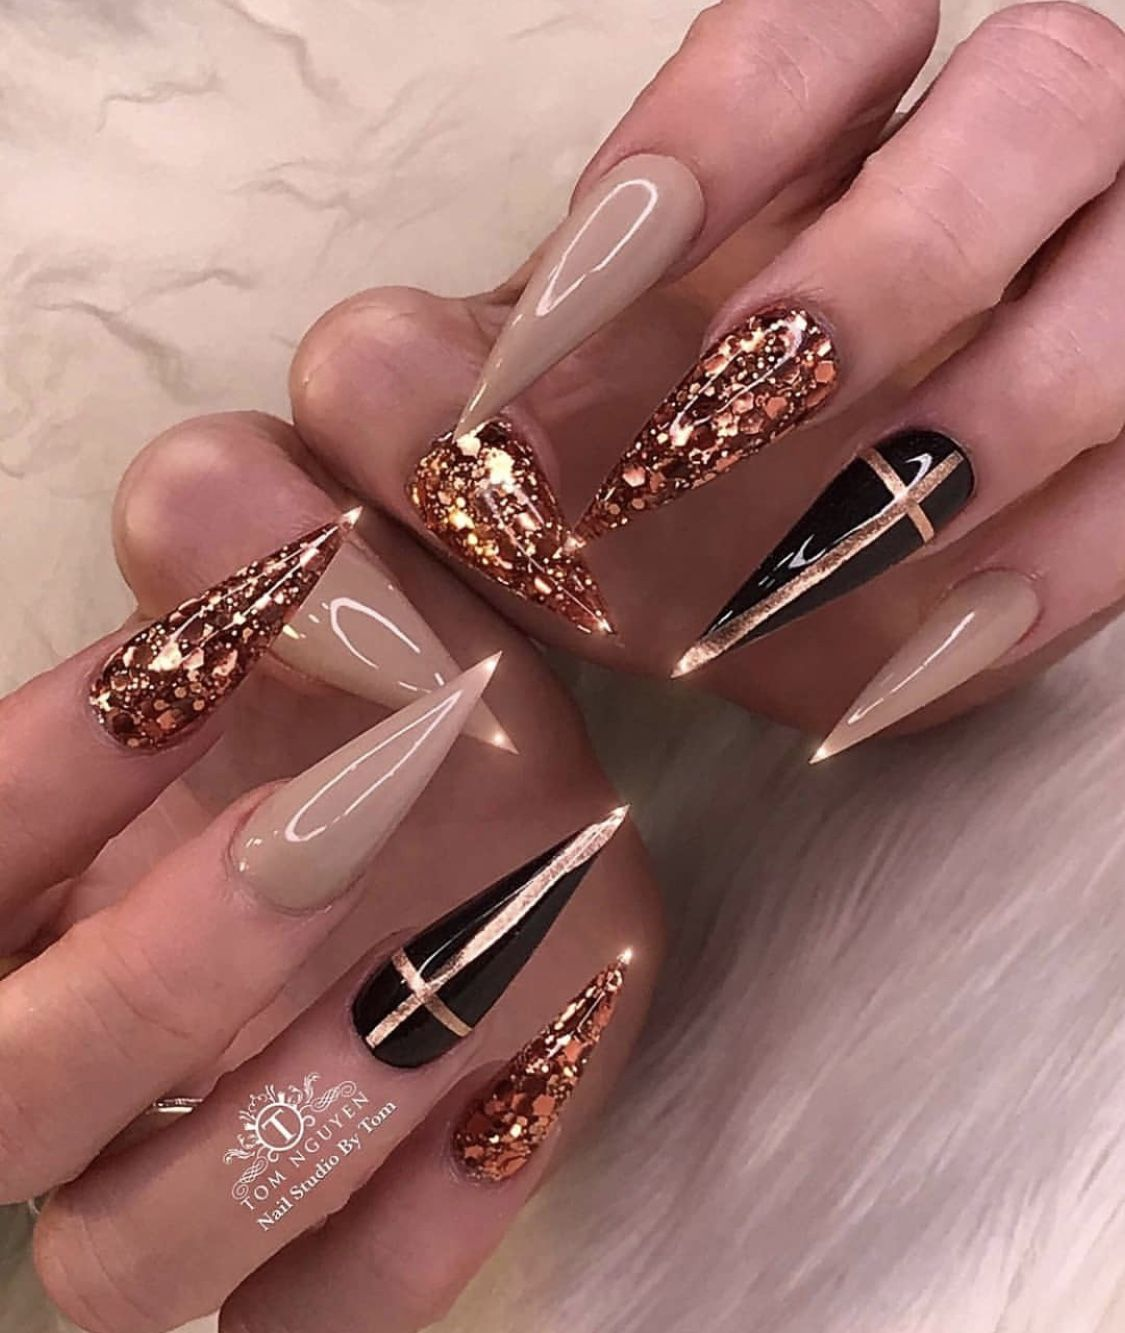 Pin By P Lucinkaaa On Nails In 2020 With Images Gelove Nehty Zlate Nehty Umele Nehty